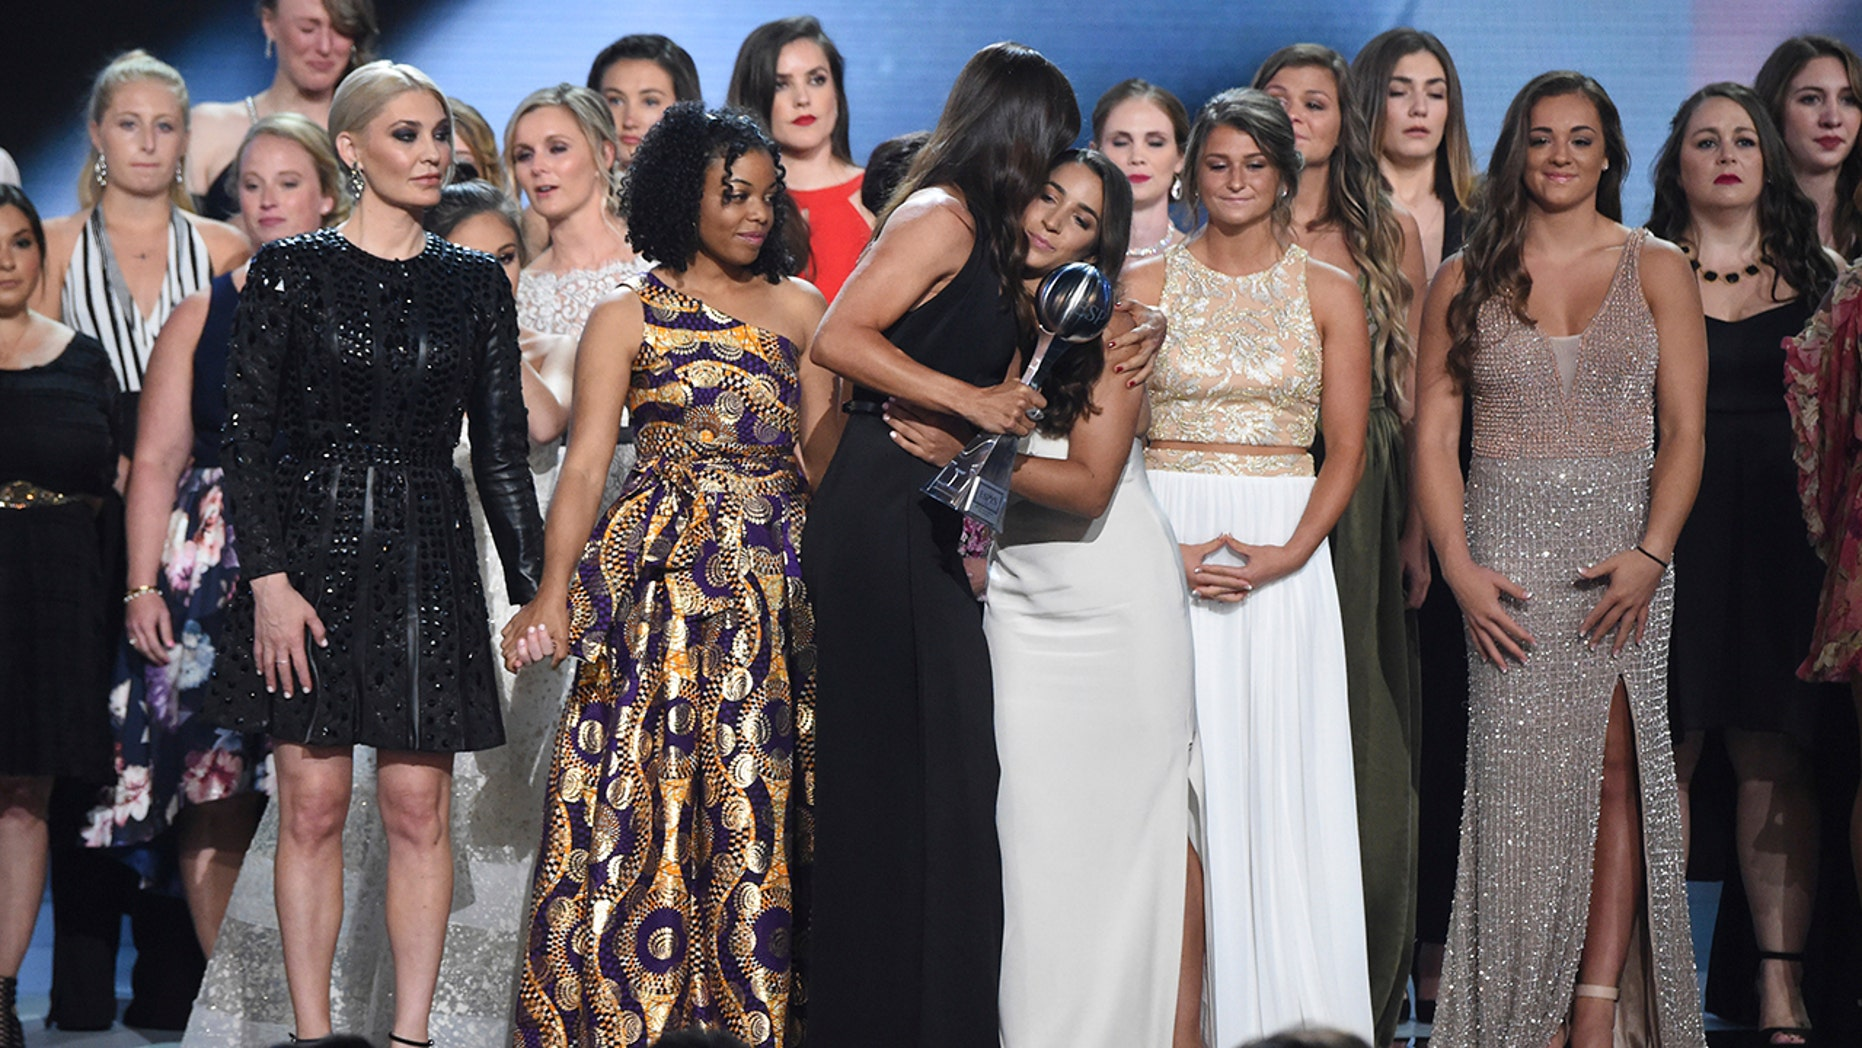 Jennifer Garner, front, embraces gymnast Aly Raisman after presenting the Arthur Ashe Award for Courage, at the ESPY Awards at Microsoft Theater on Wednesday, July 18 in Los Angeles.